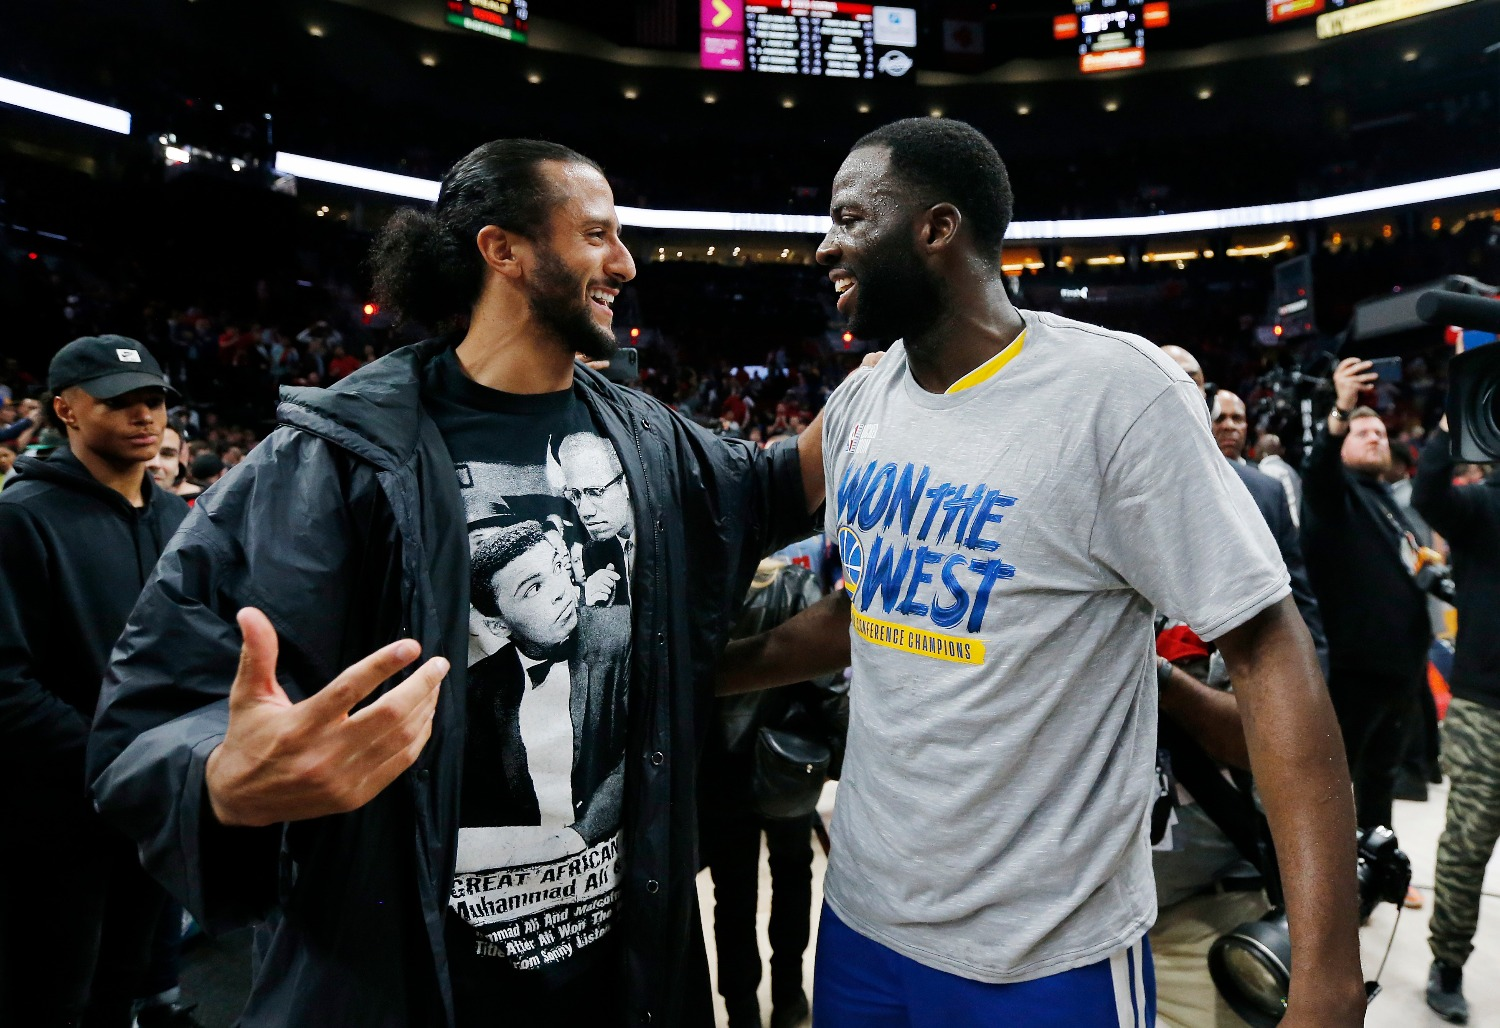 The NBA boycott validates the mission Colin Kaepernick started four years ago by sitting during the national anthem as a form of peaceful protest against police brutality.